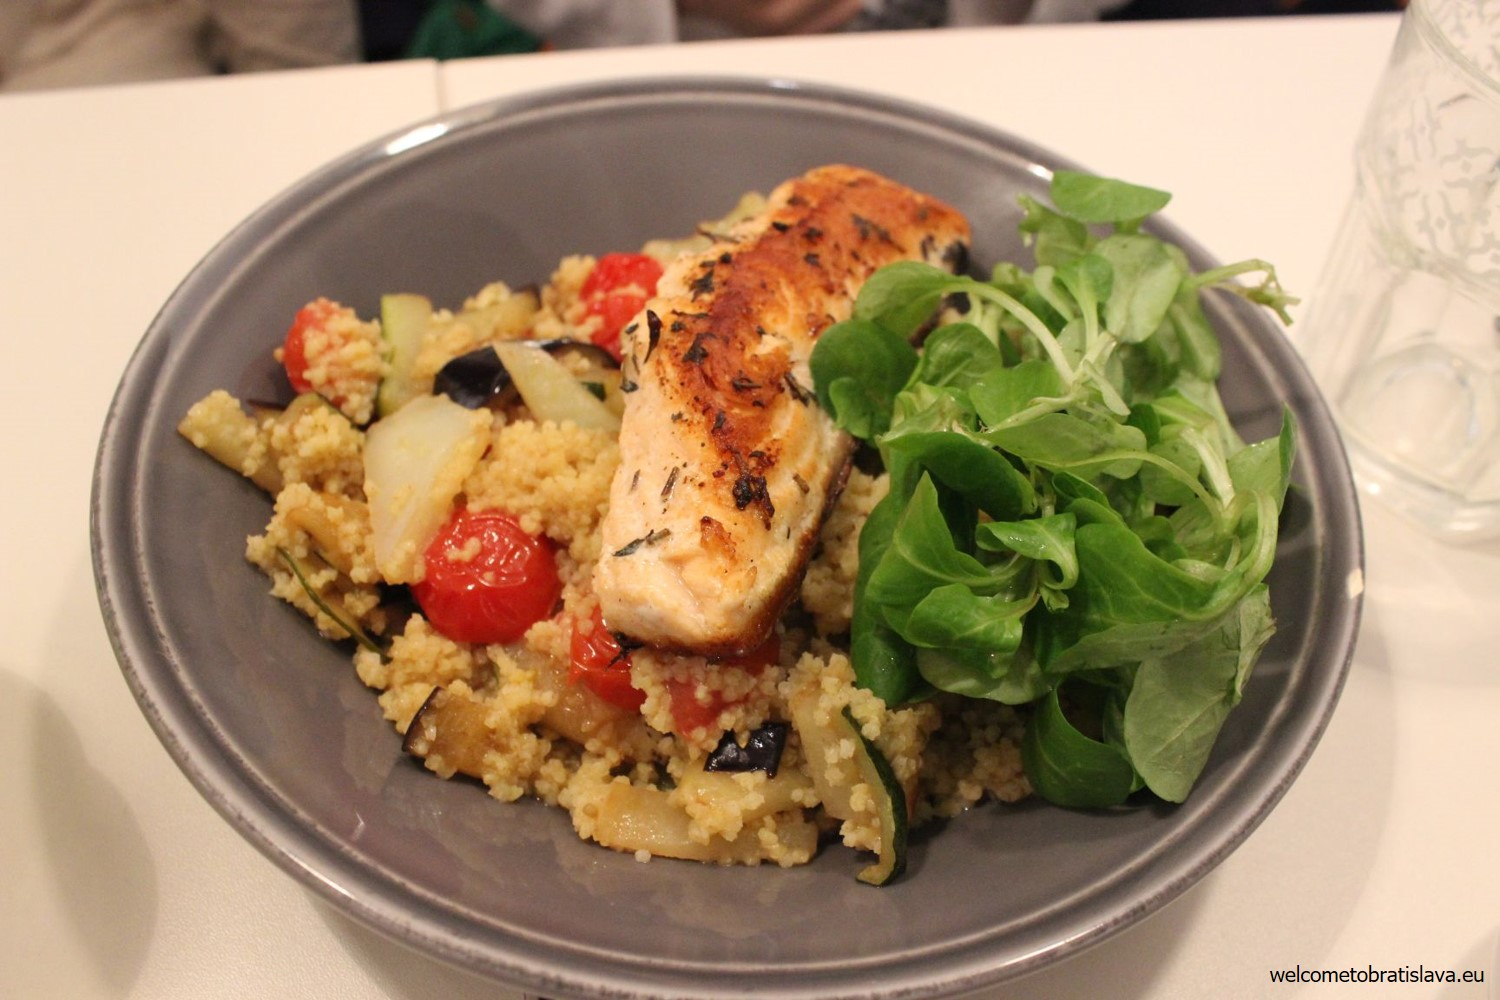 Grilled salmon with millet and grilled vegetables